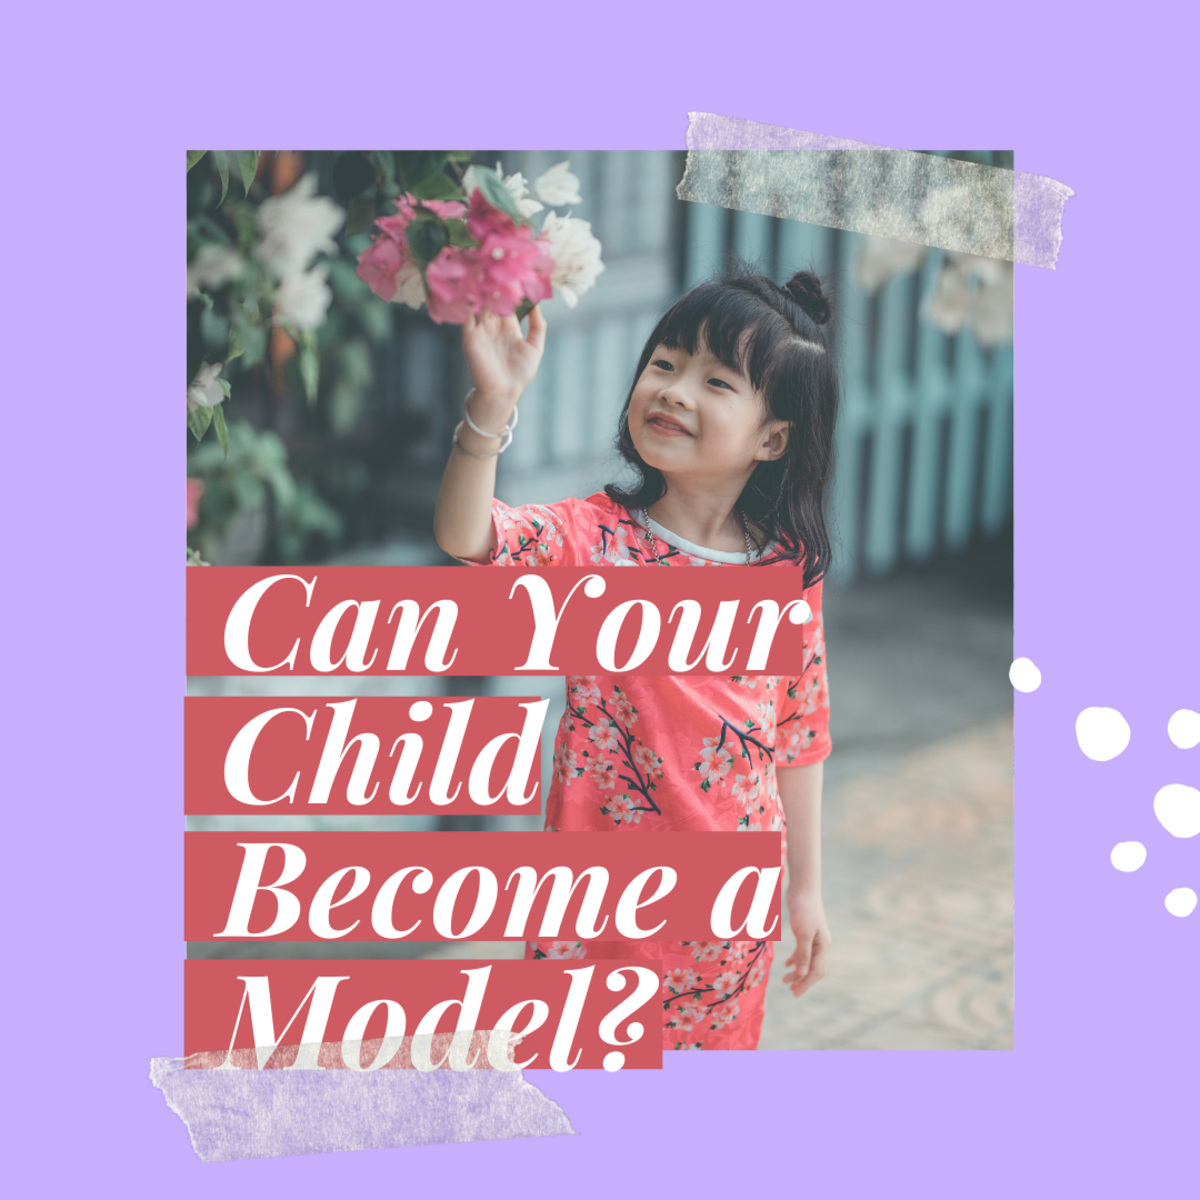 How to Get Your Child Into Modeling